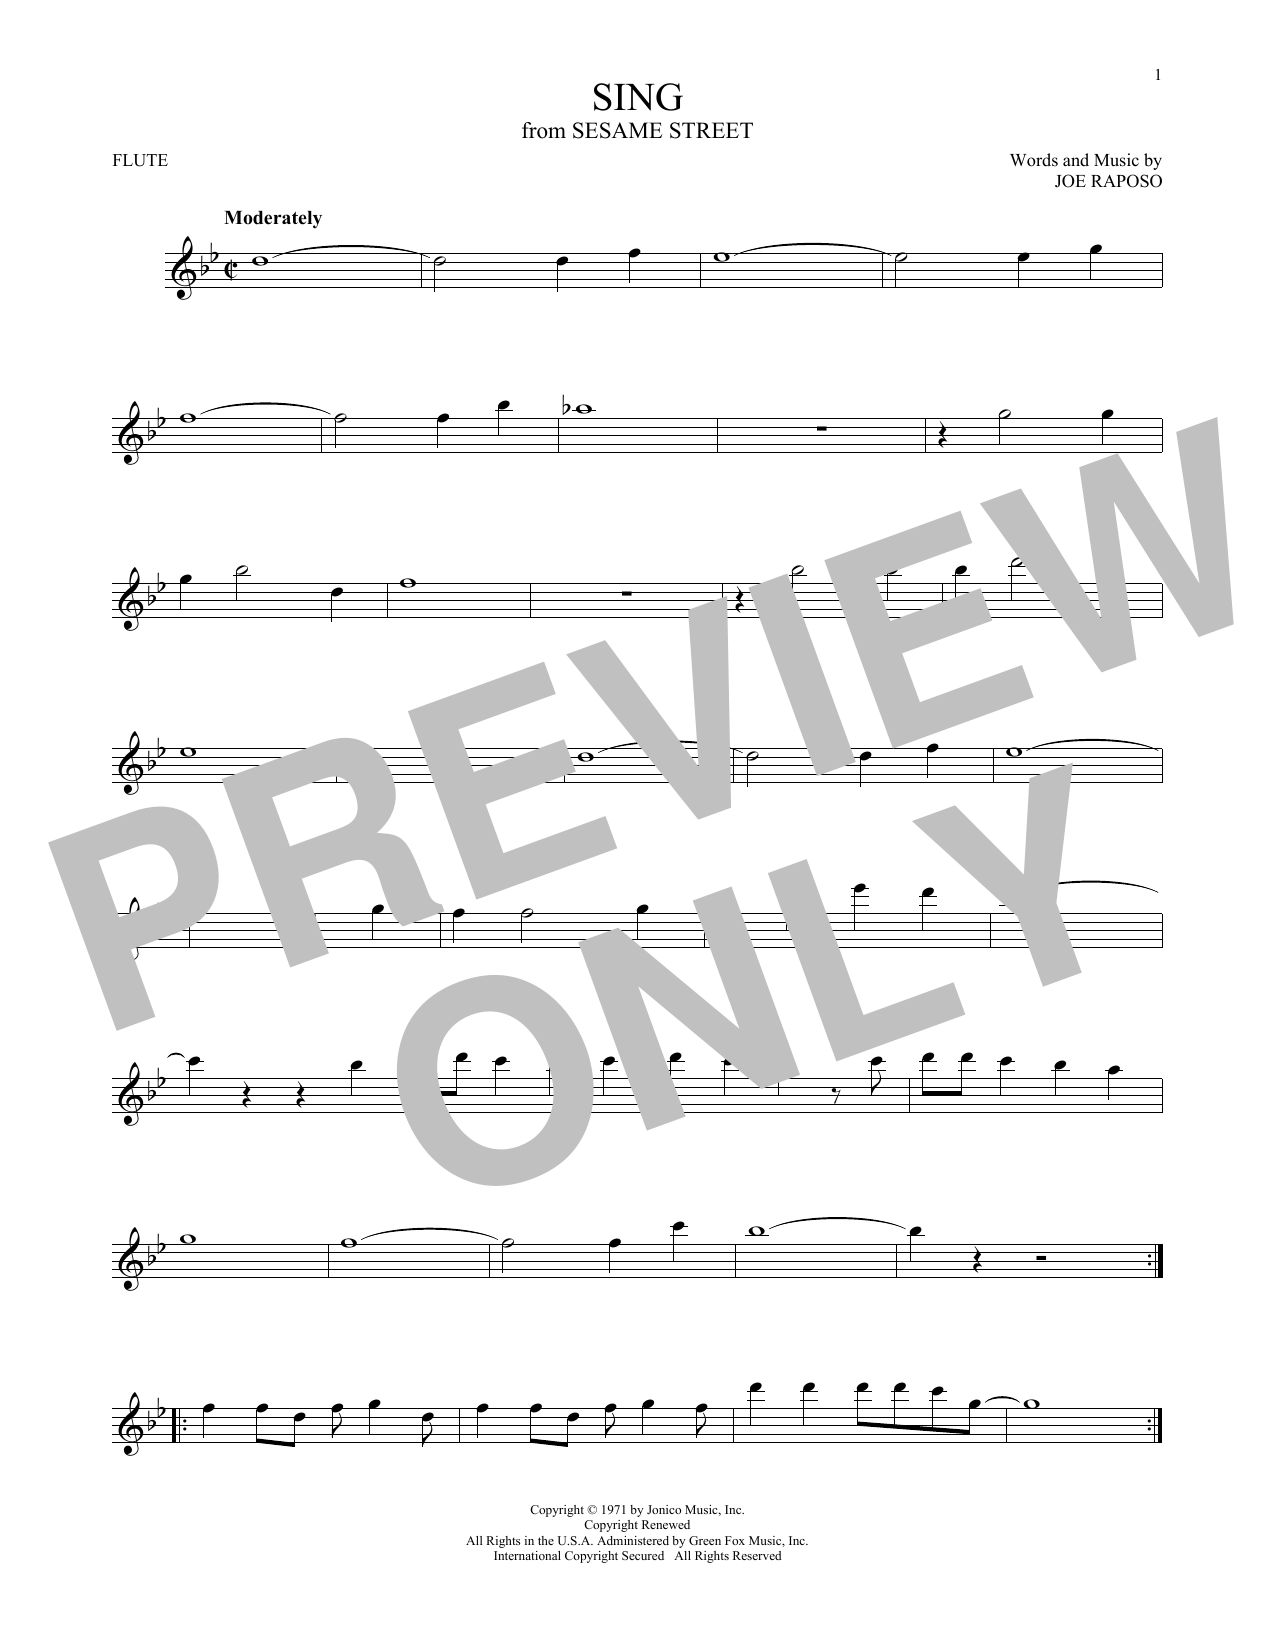 Sing (Flute Solo)